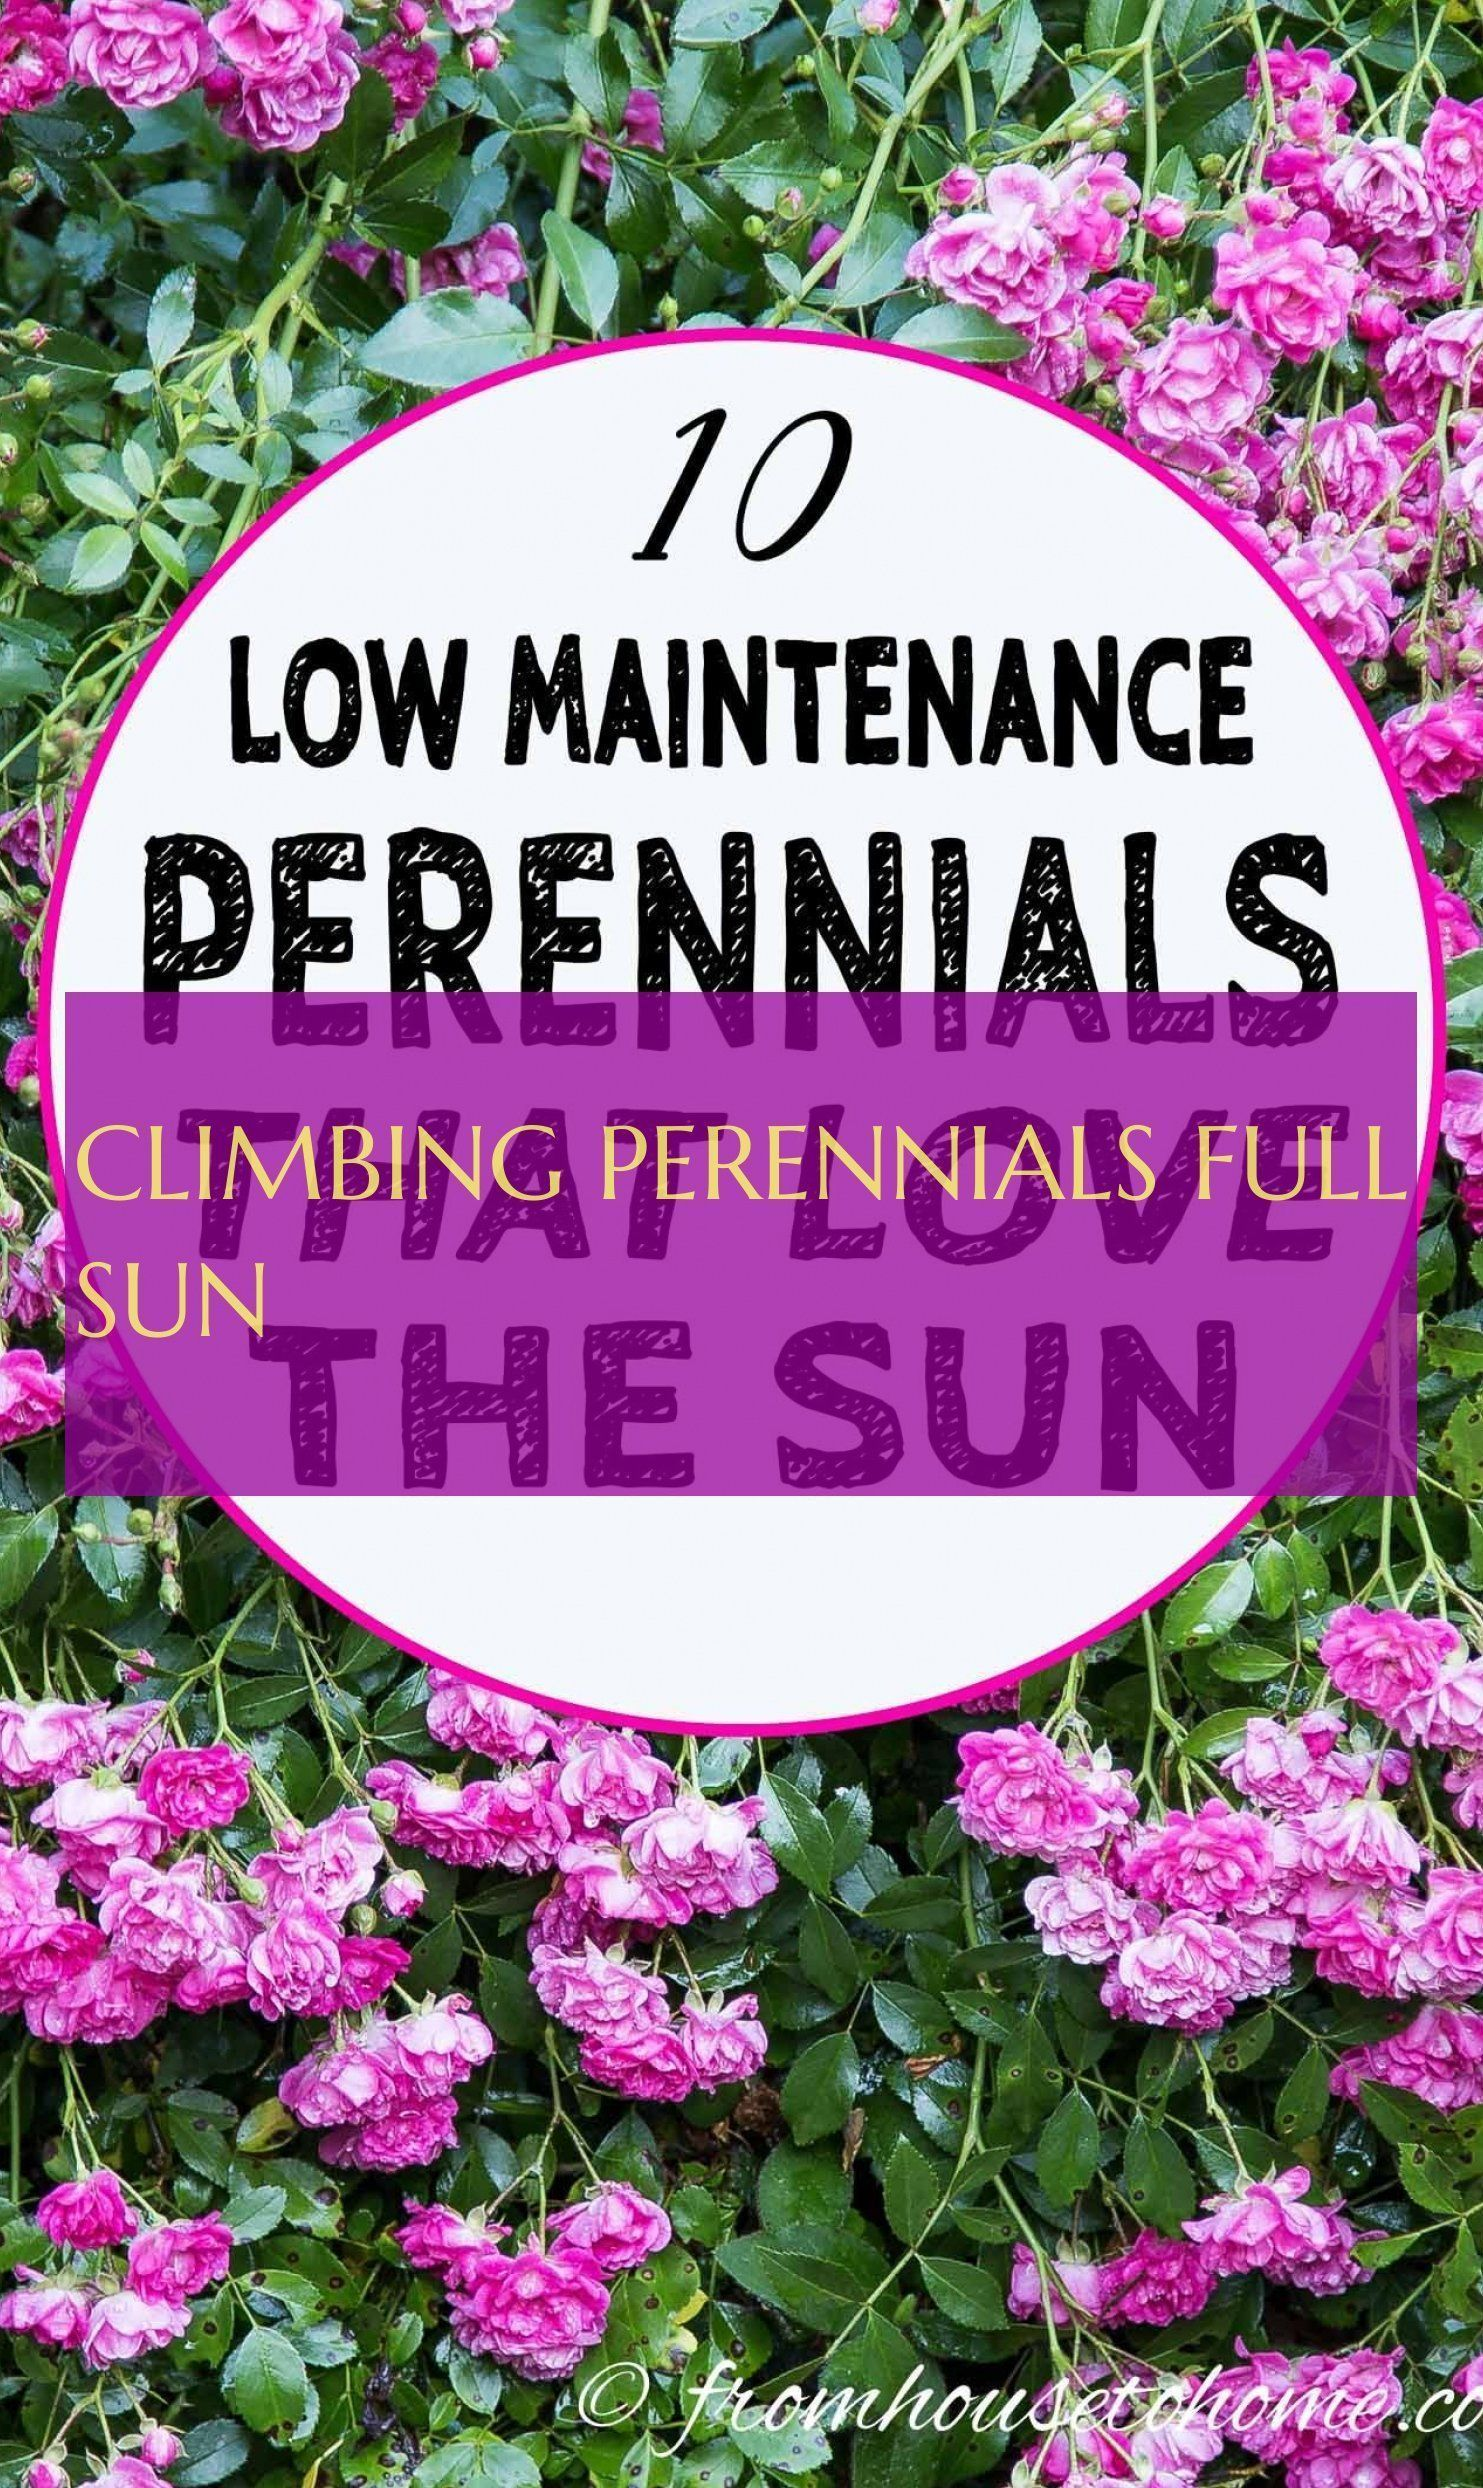 A Comprehensive Overview On Home Decoration In 2020 Full Sun Perennials Perennials Climbing Plants